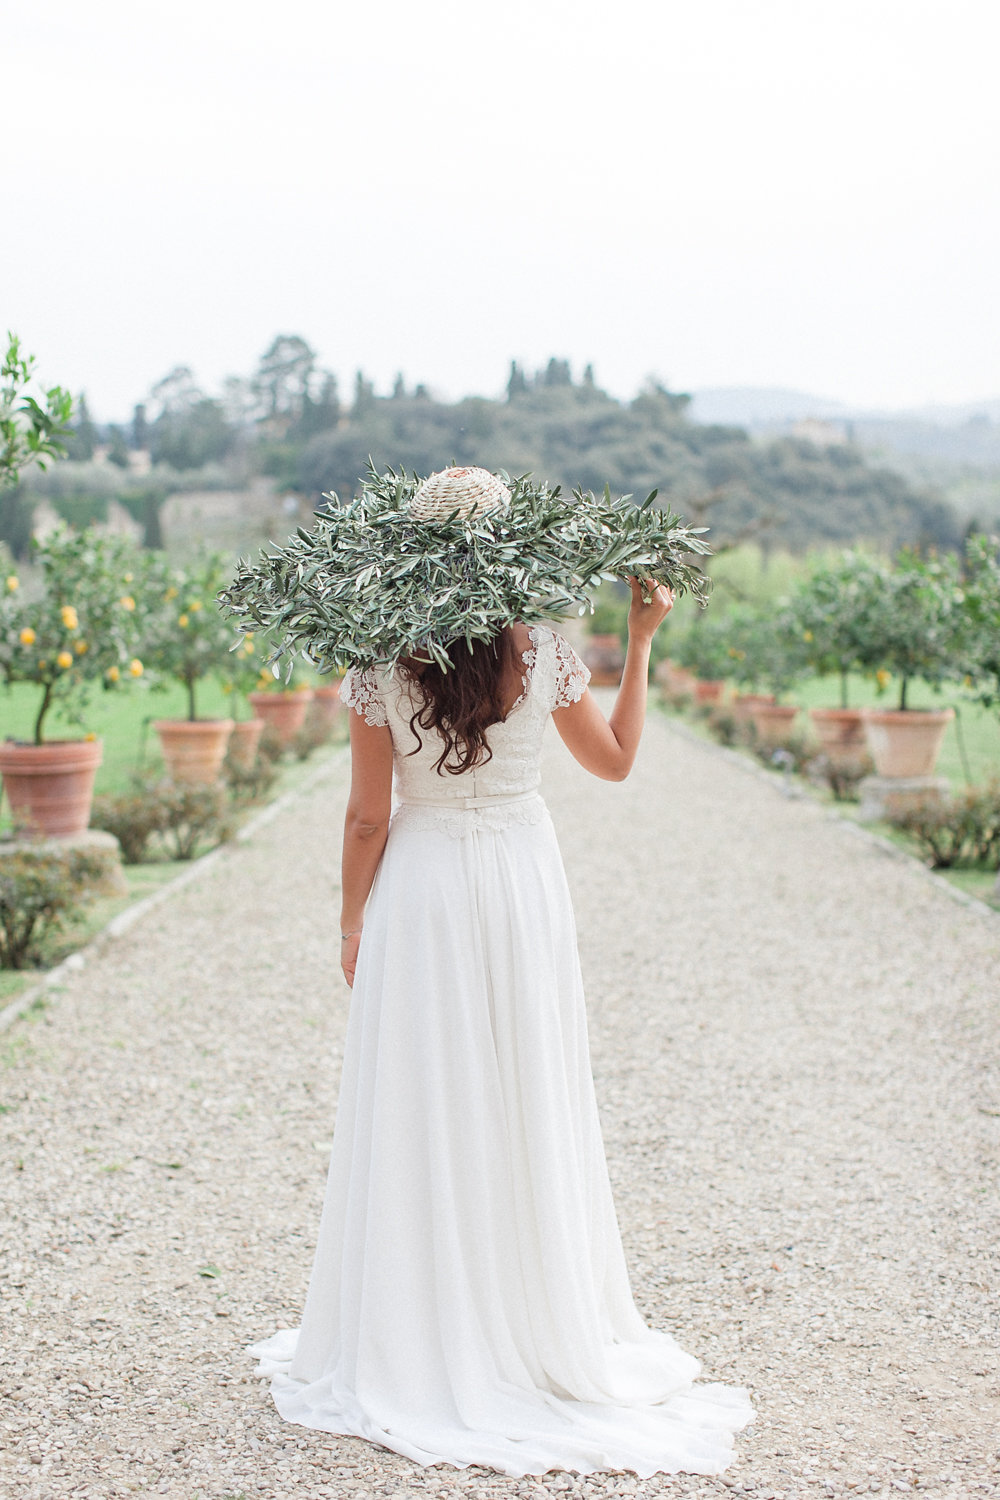 Tuscany Wedding Photographer Roberta Facchini 304